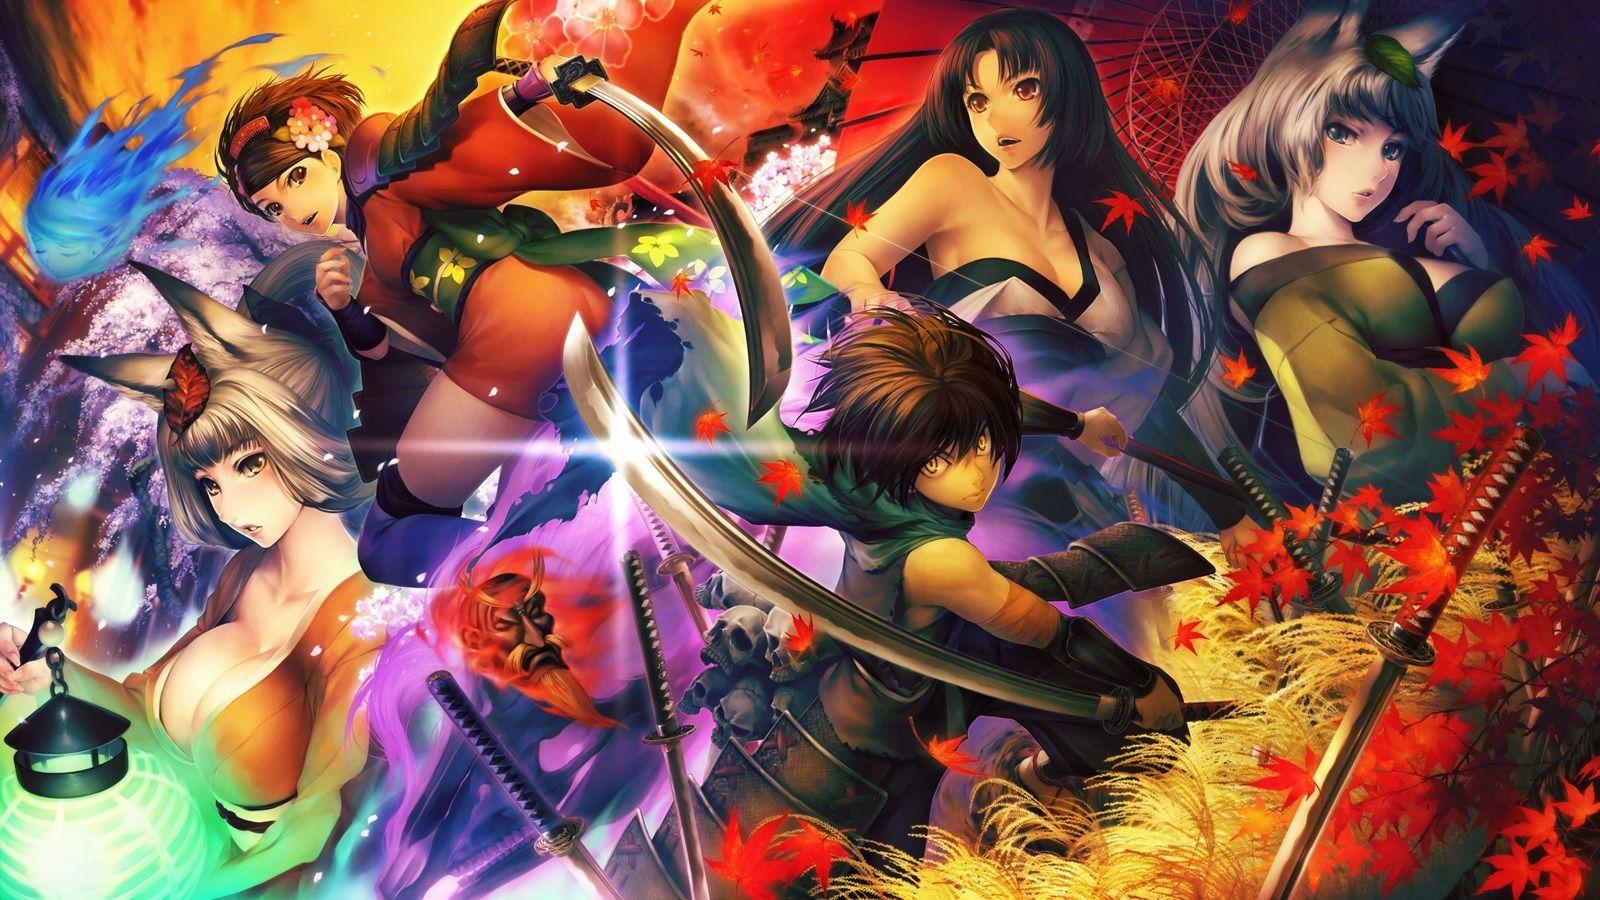 Muramasa Rebirth Ps Vita Wallpapers Wallpaper Cave